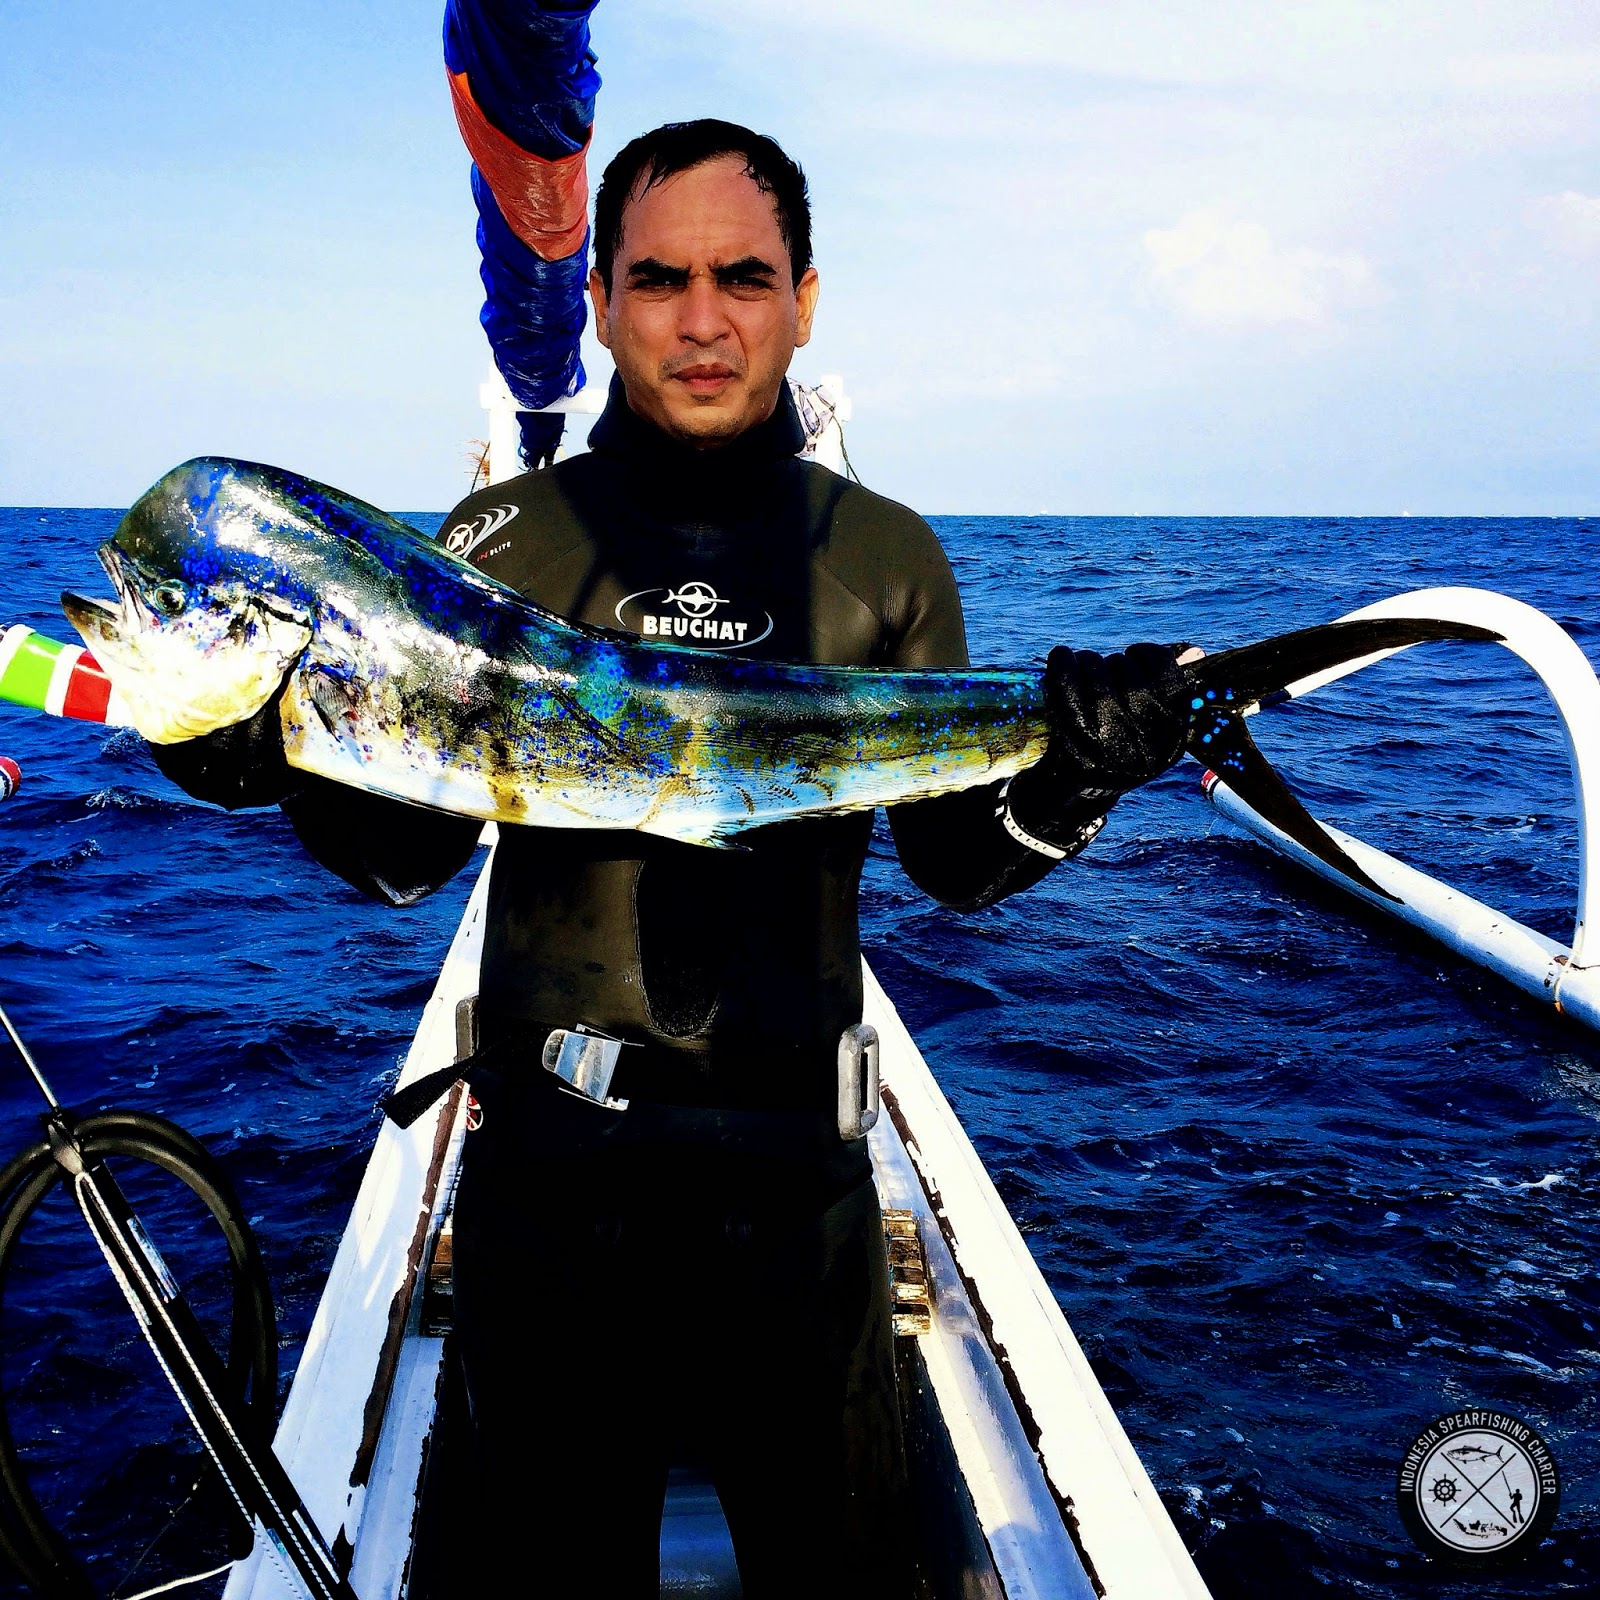 Mahi Mahi, dorado, dolphinfish, tumpek, lemadang caught in North Bali season start October until January